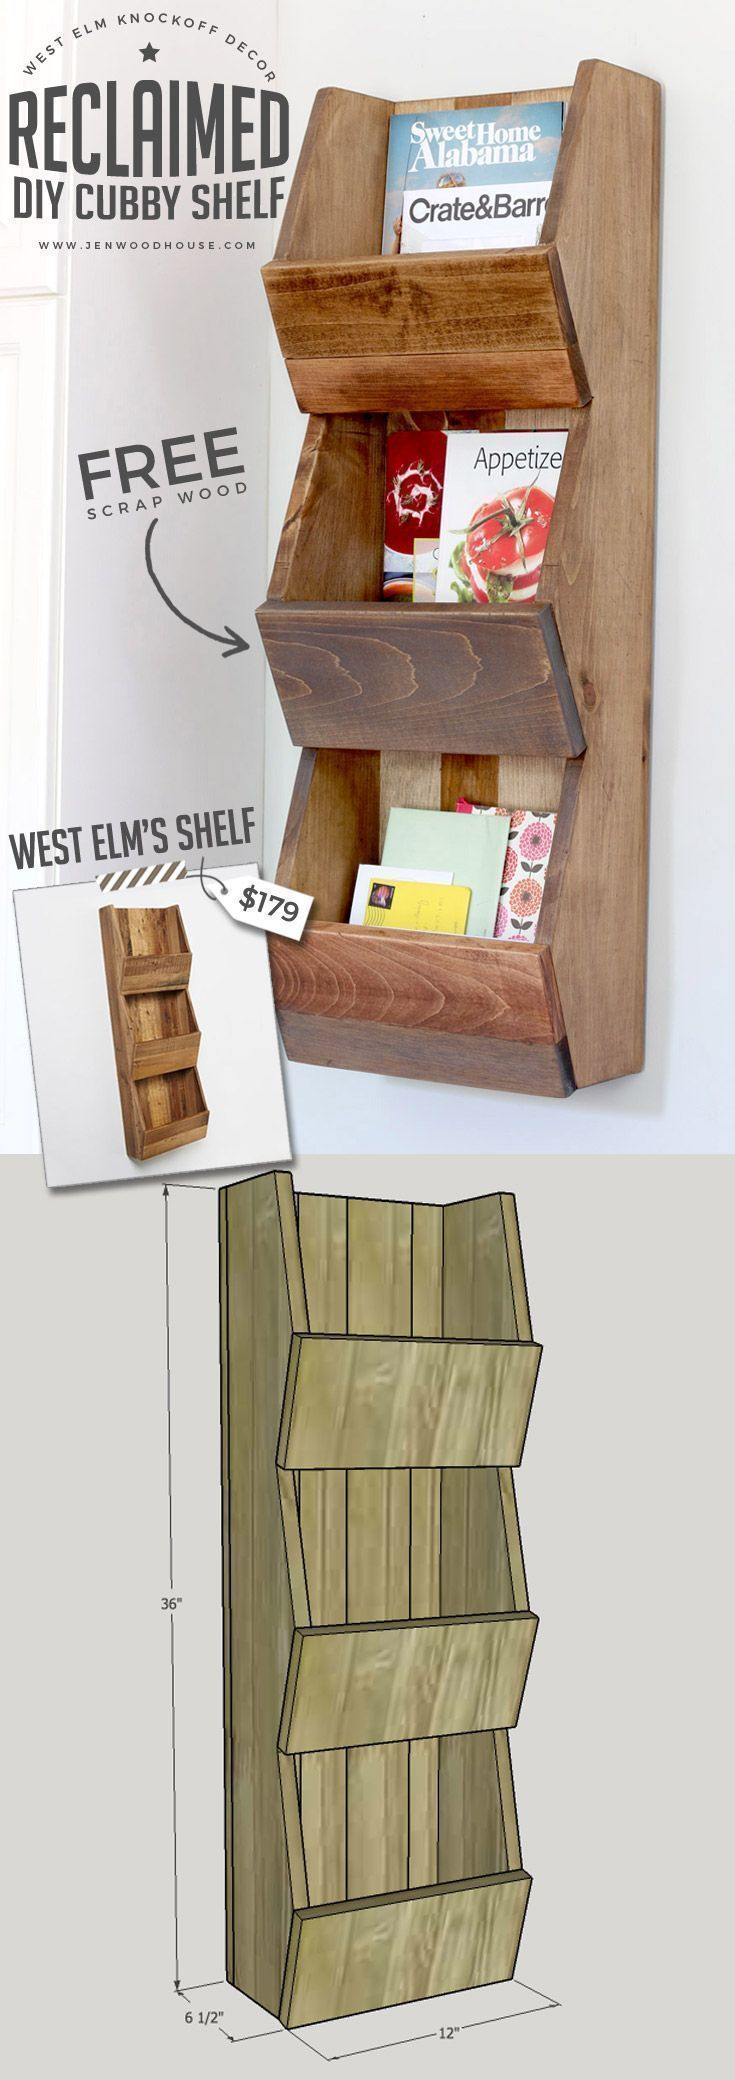 LOVE THIS! Tutorial on how to build a DIY West Elm knockoff cubby shelf. Build it out of scrap wood!